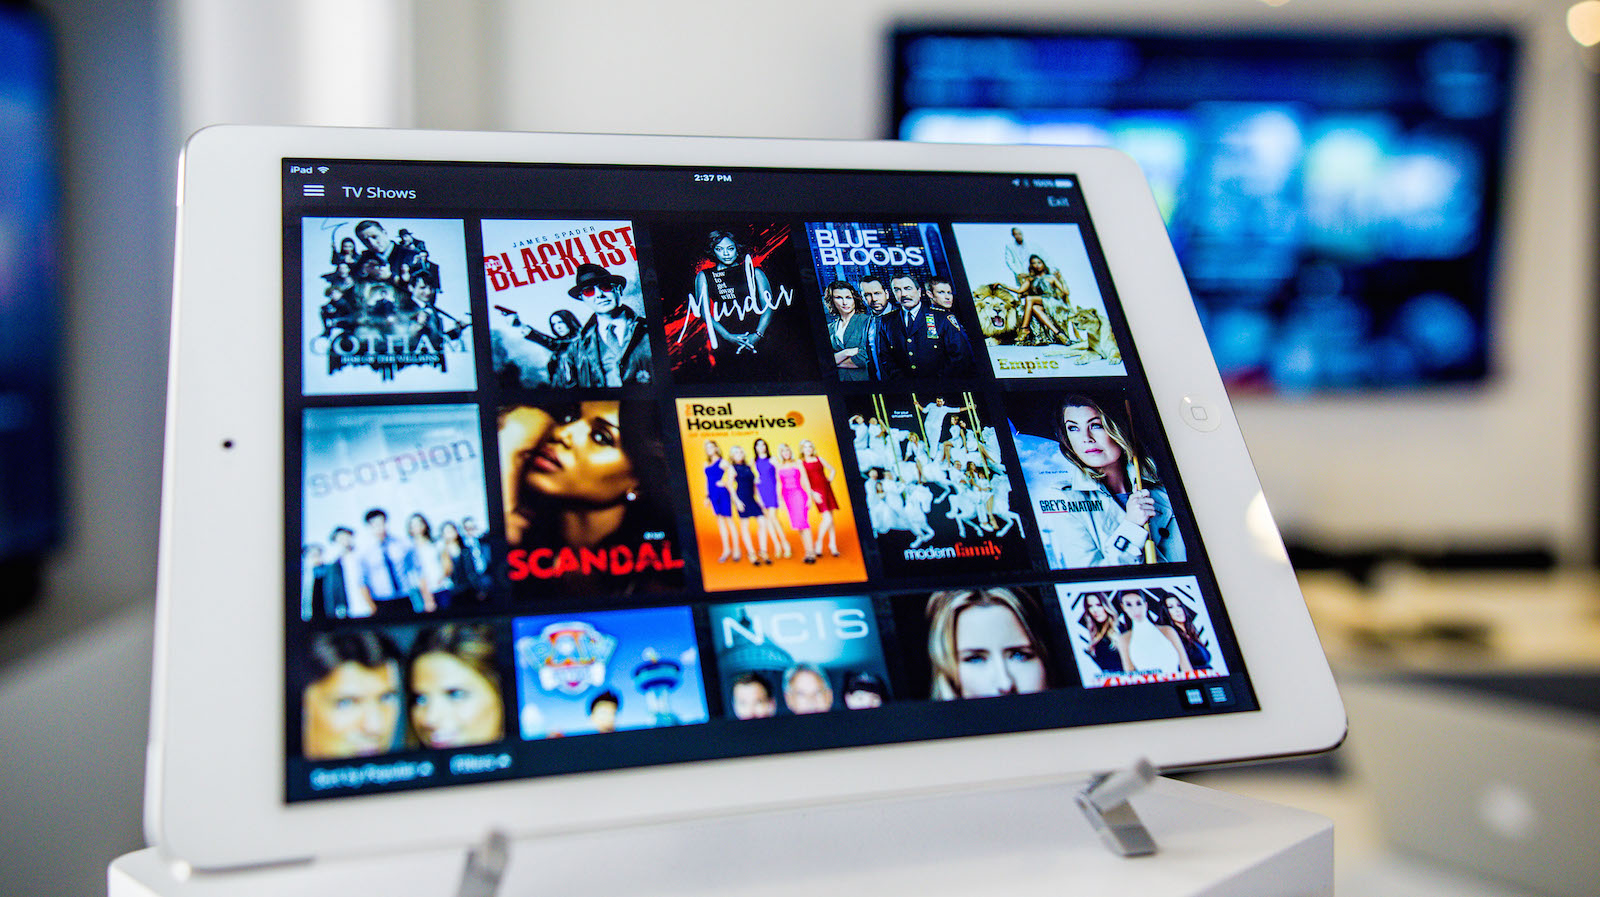 With apps like Netflix and Hulu, your old cable box wants to once